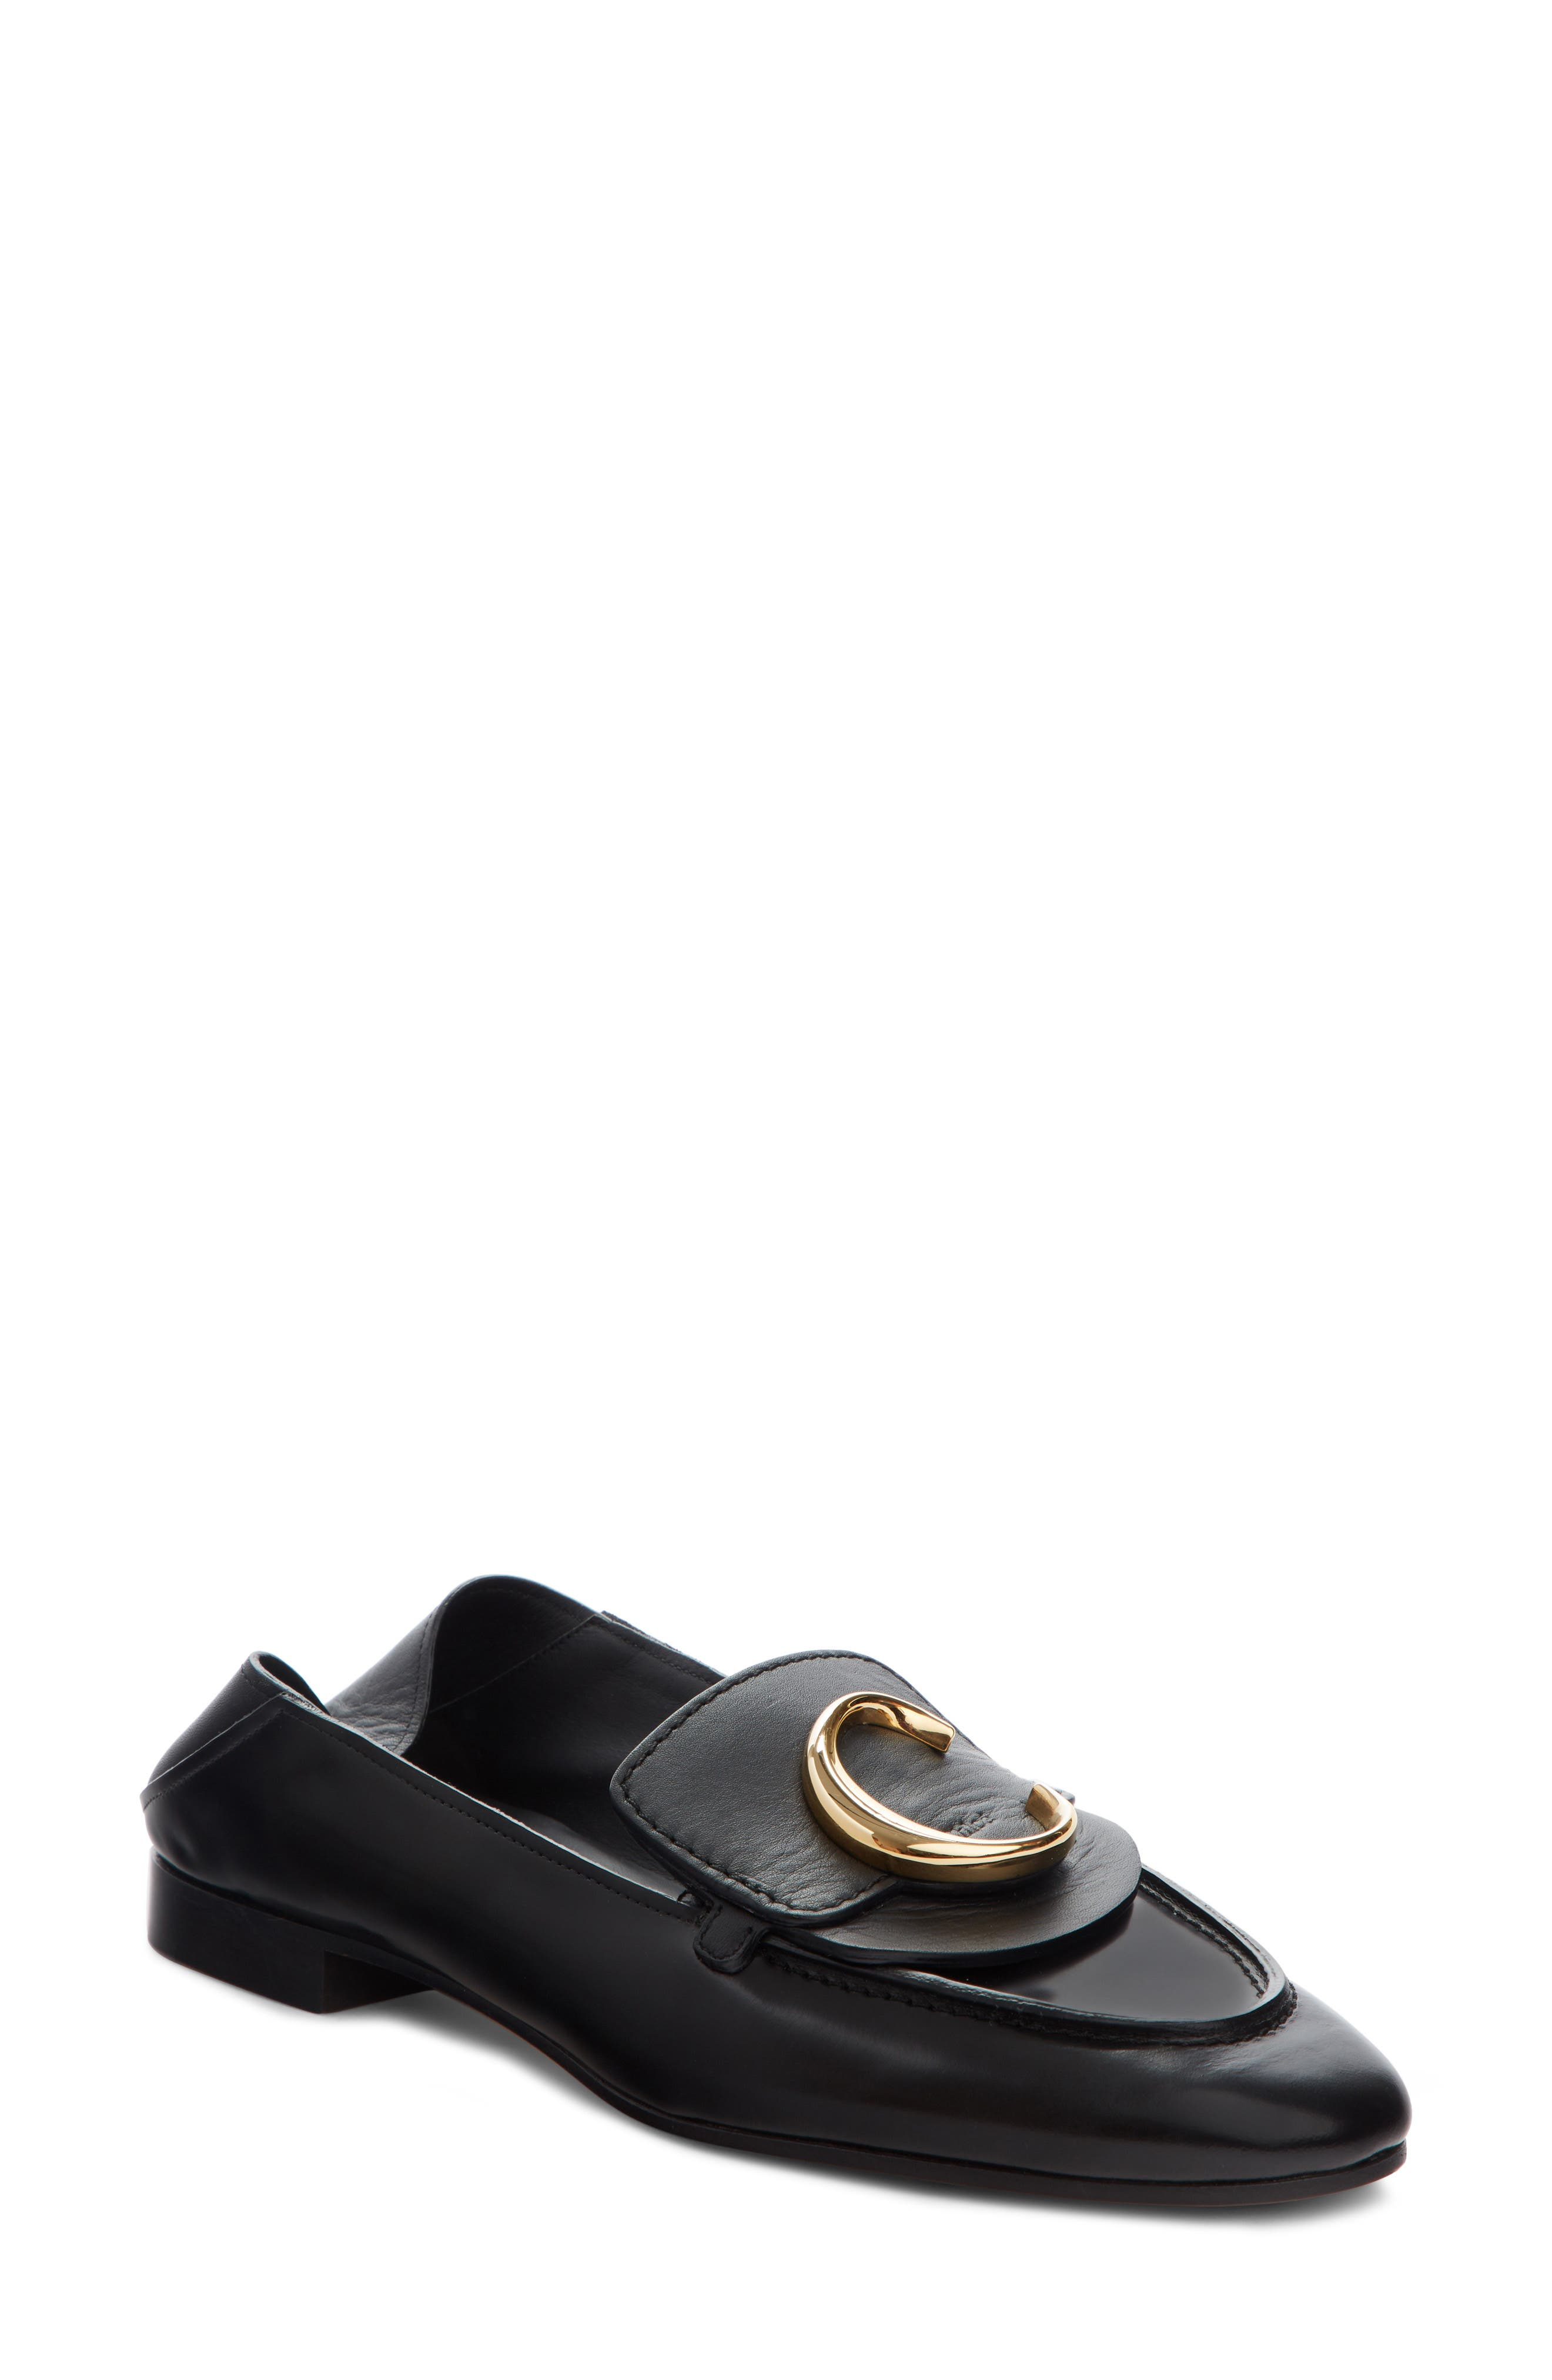 Story Convertible Loafer,                             Main thumbnail 1, color,                             BLACK LEATHER